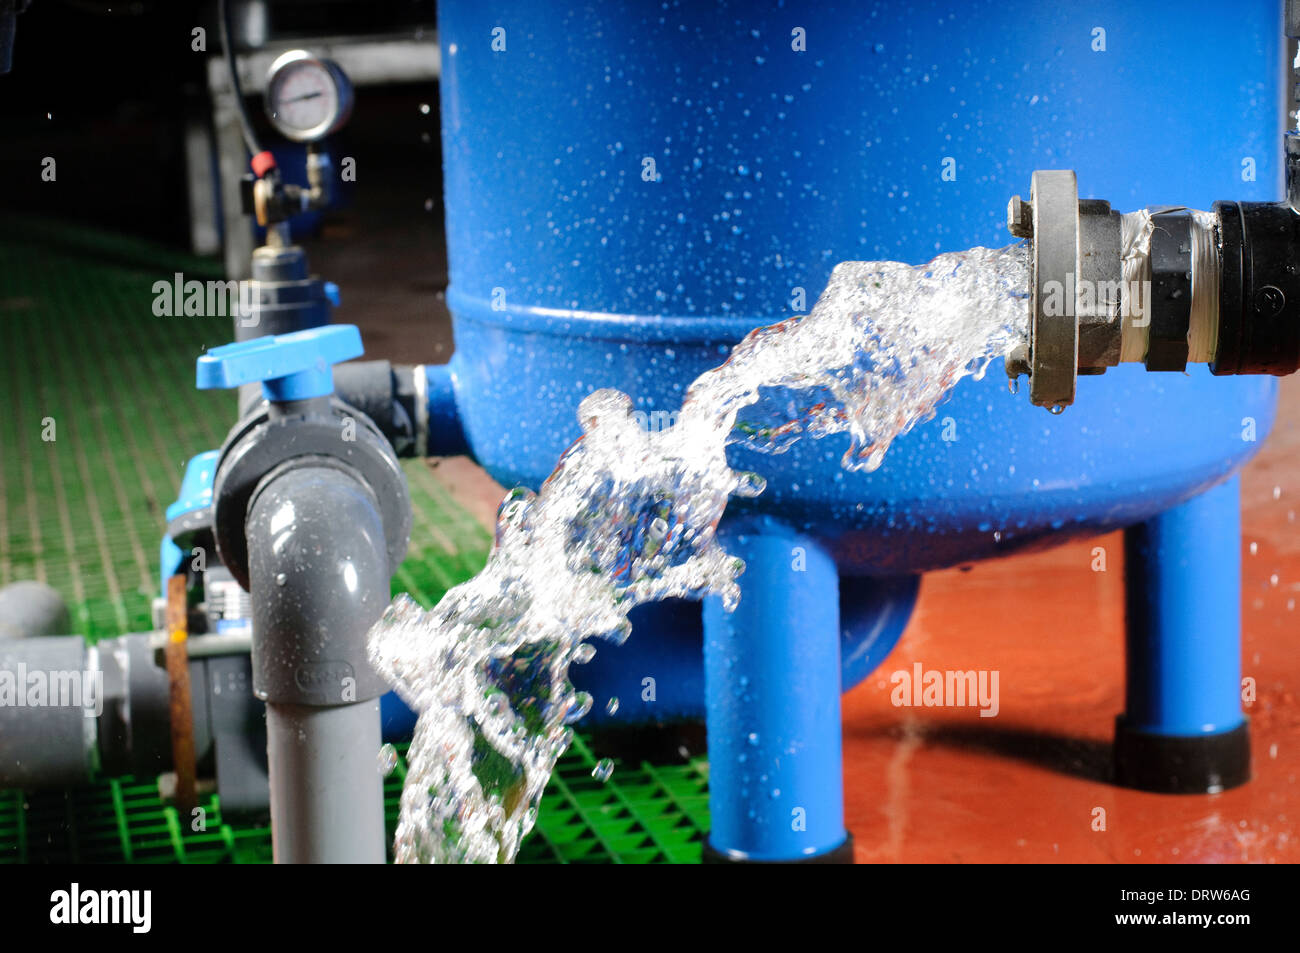 Water purification system. Water discharge - Stock Image